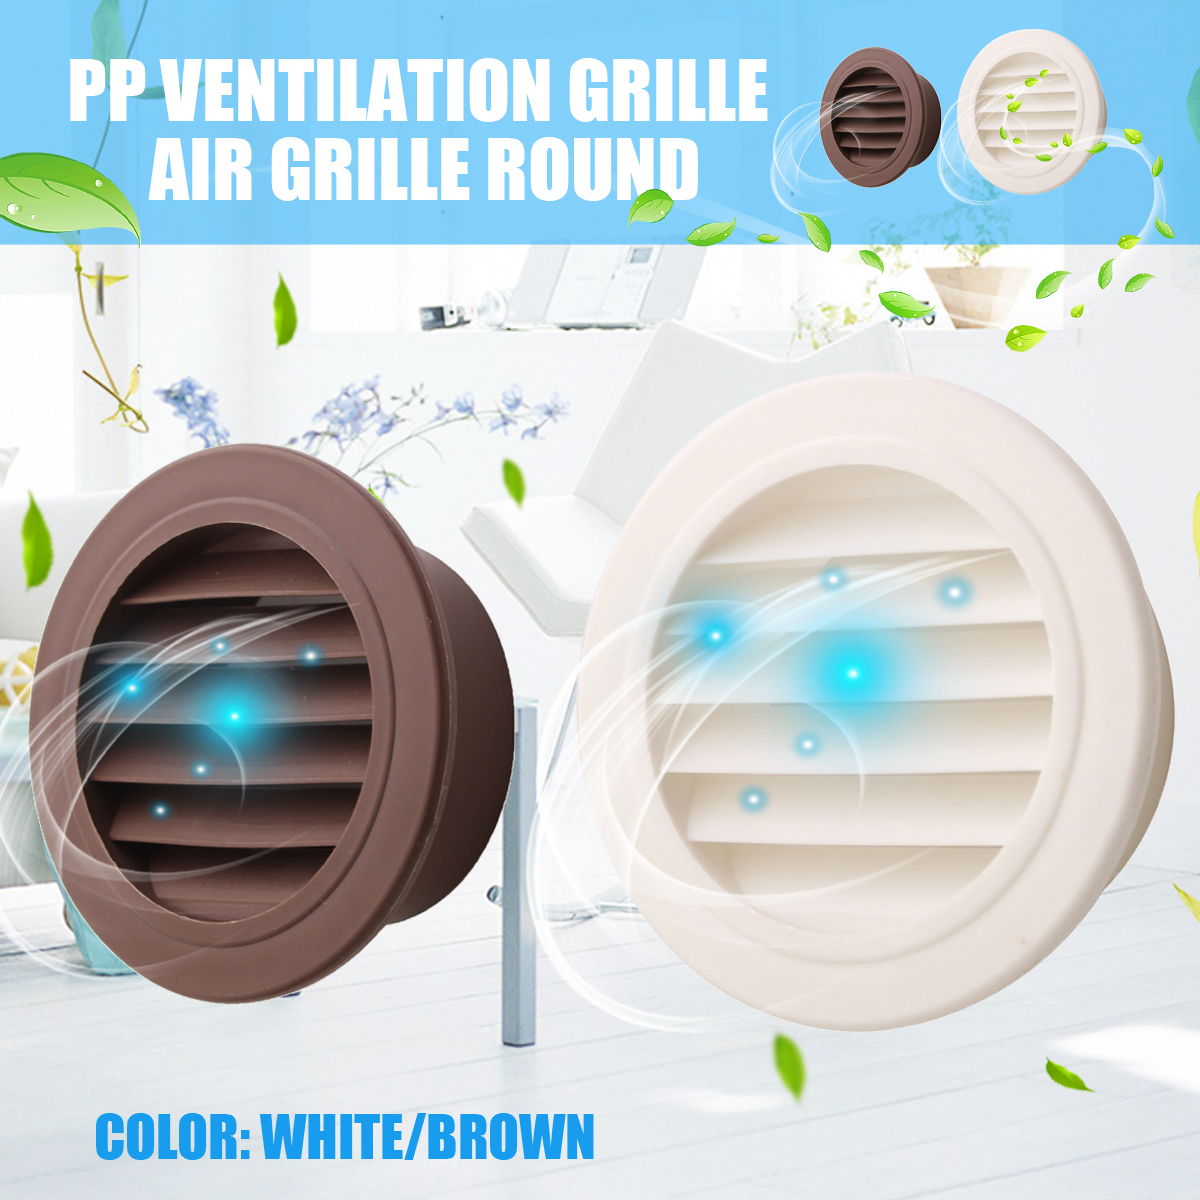 MTGATHER Round Air Vent ABS Louver Grille Cover PP Ventilation Grille Air Grille 100mm Heating Cooling  Vents